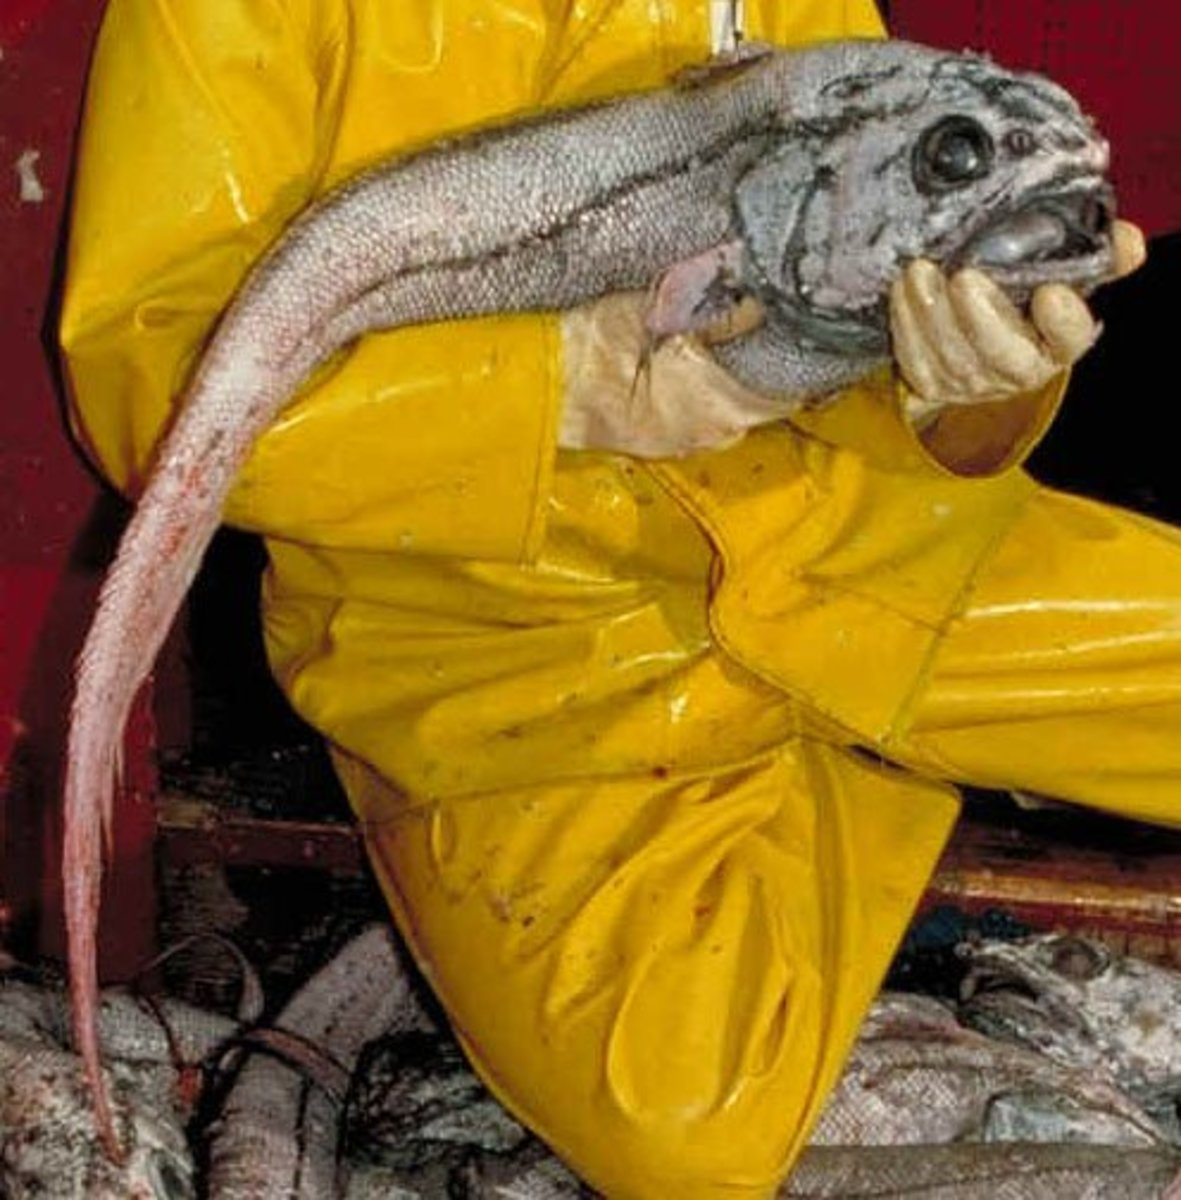 I hope this scientist from the U.S. National Oceanic and Atmospheric Administration was wearing a nose plug while handling this giant grenadier!